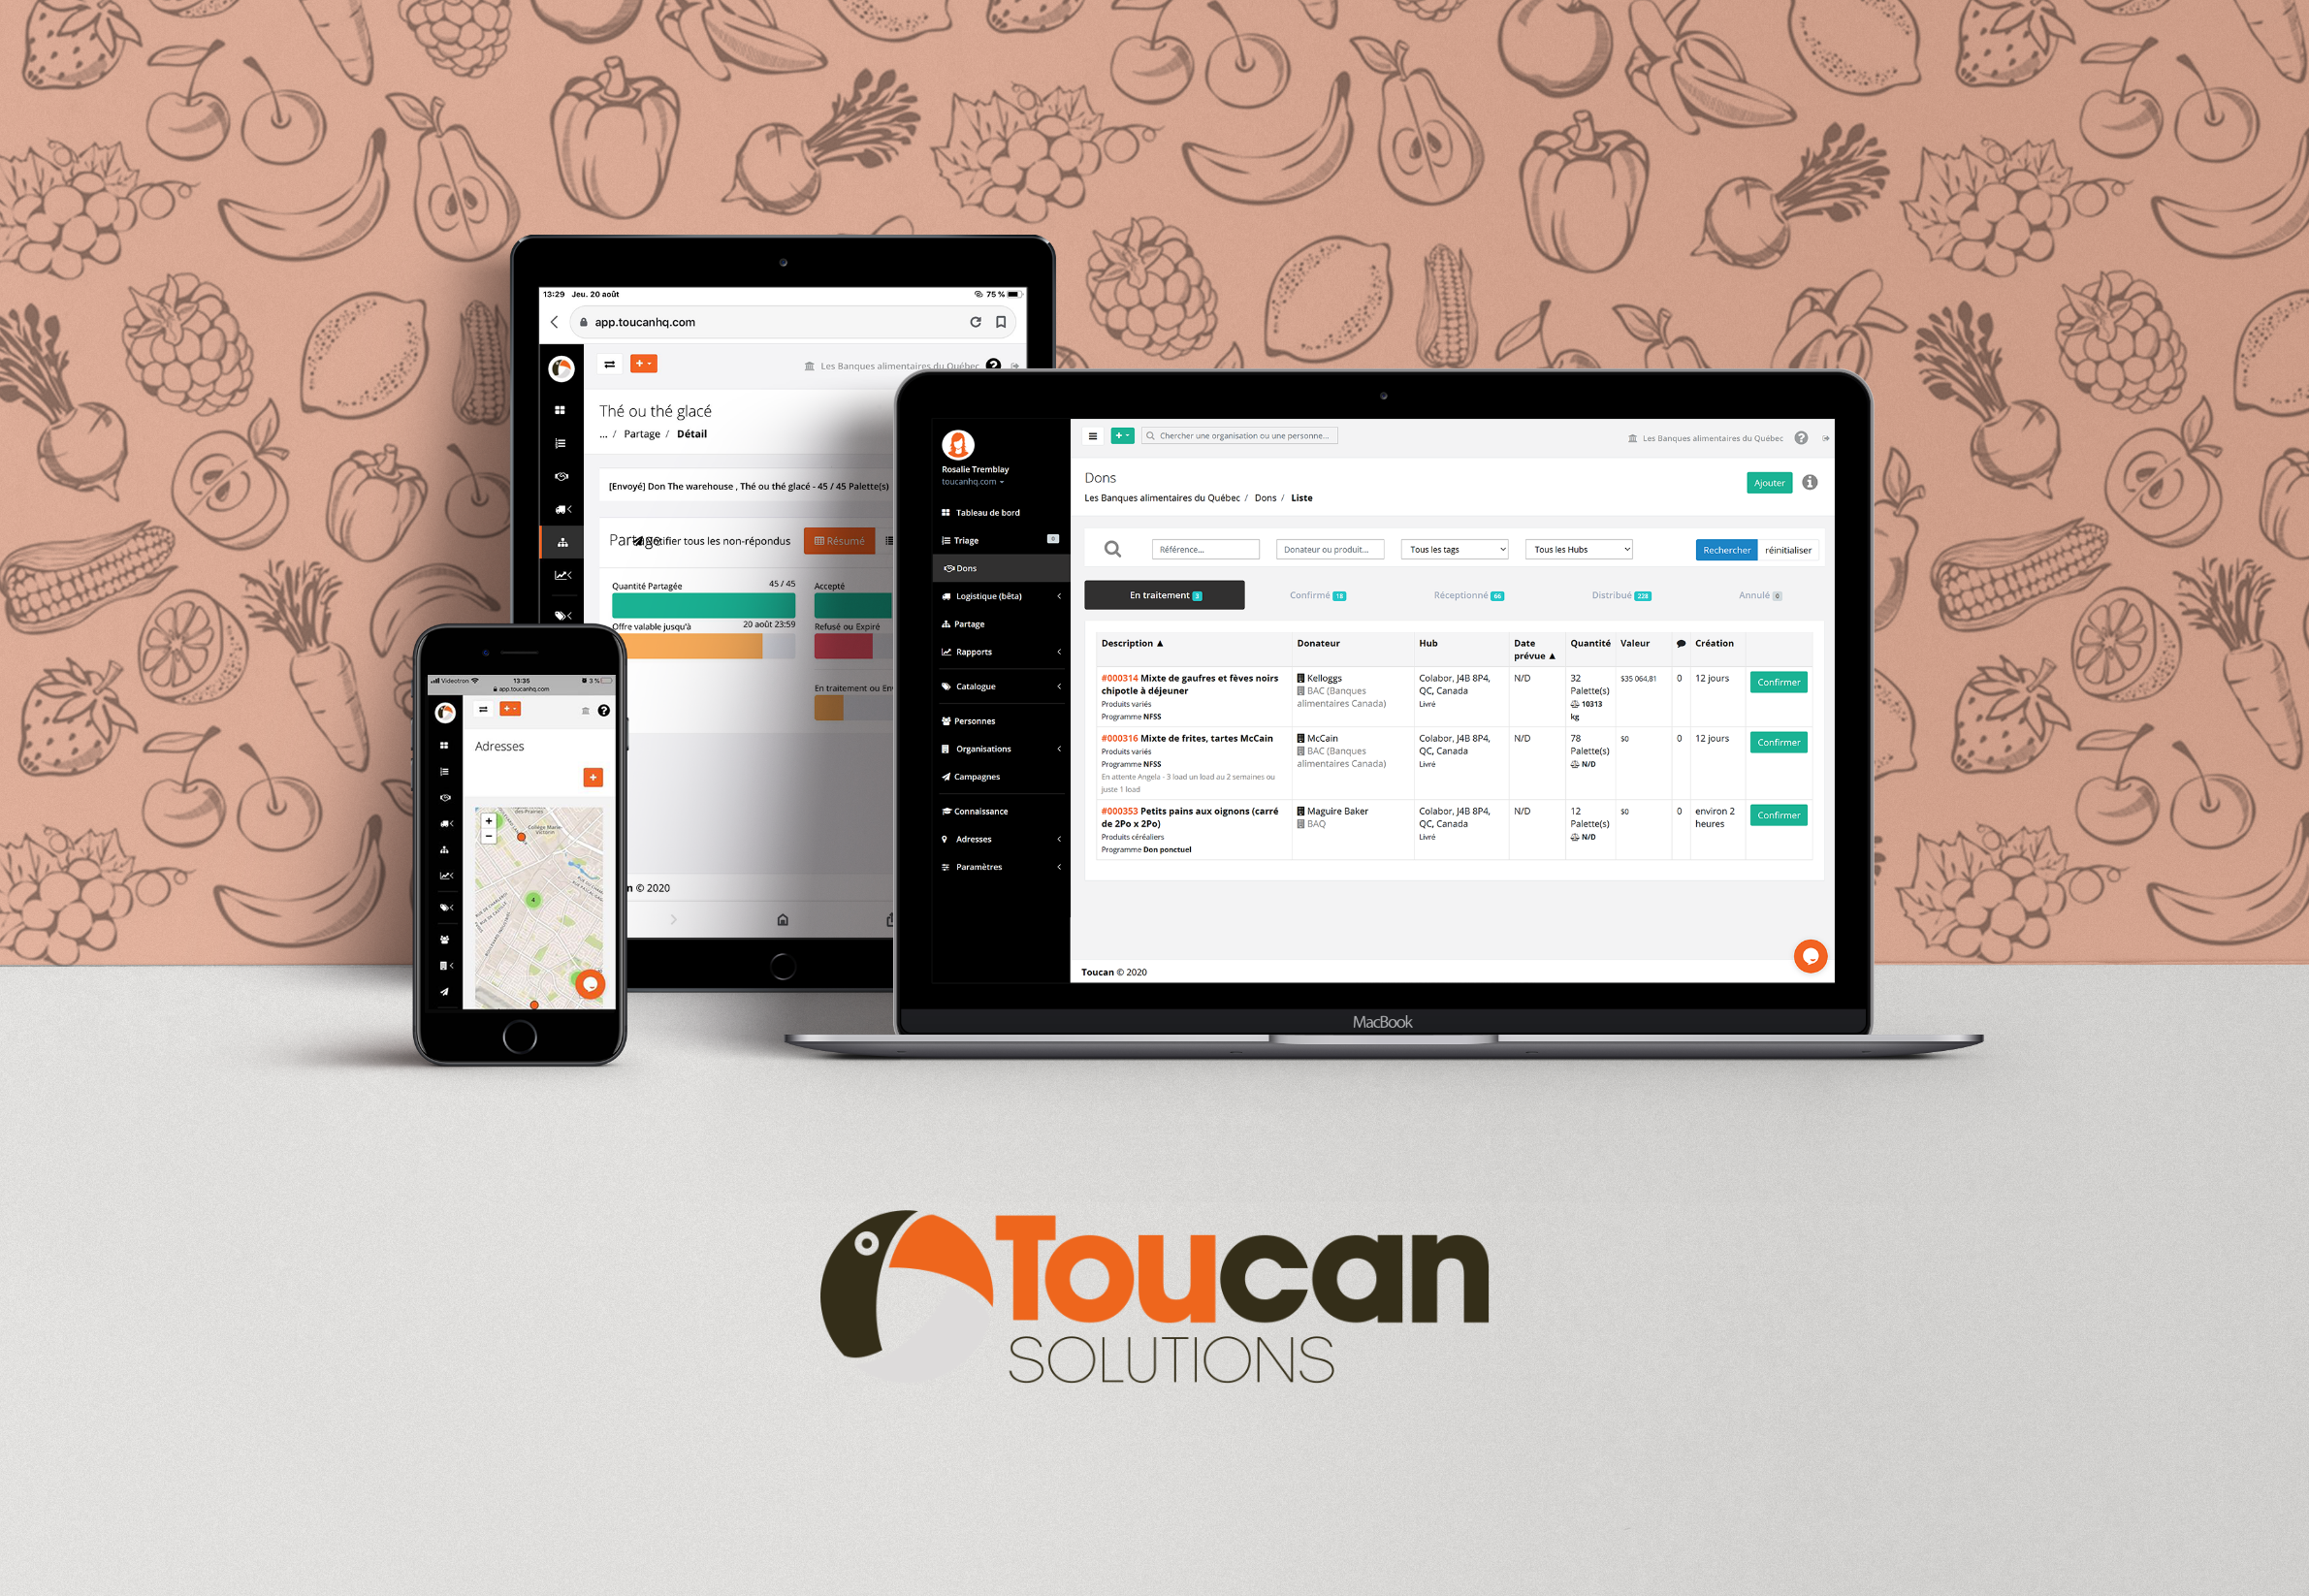 Gallery Toucan Solutions 2